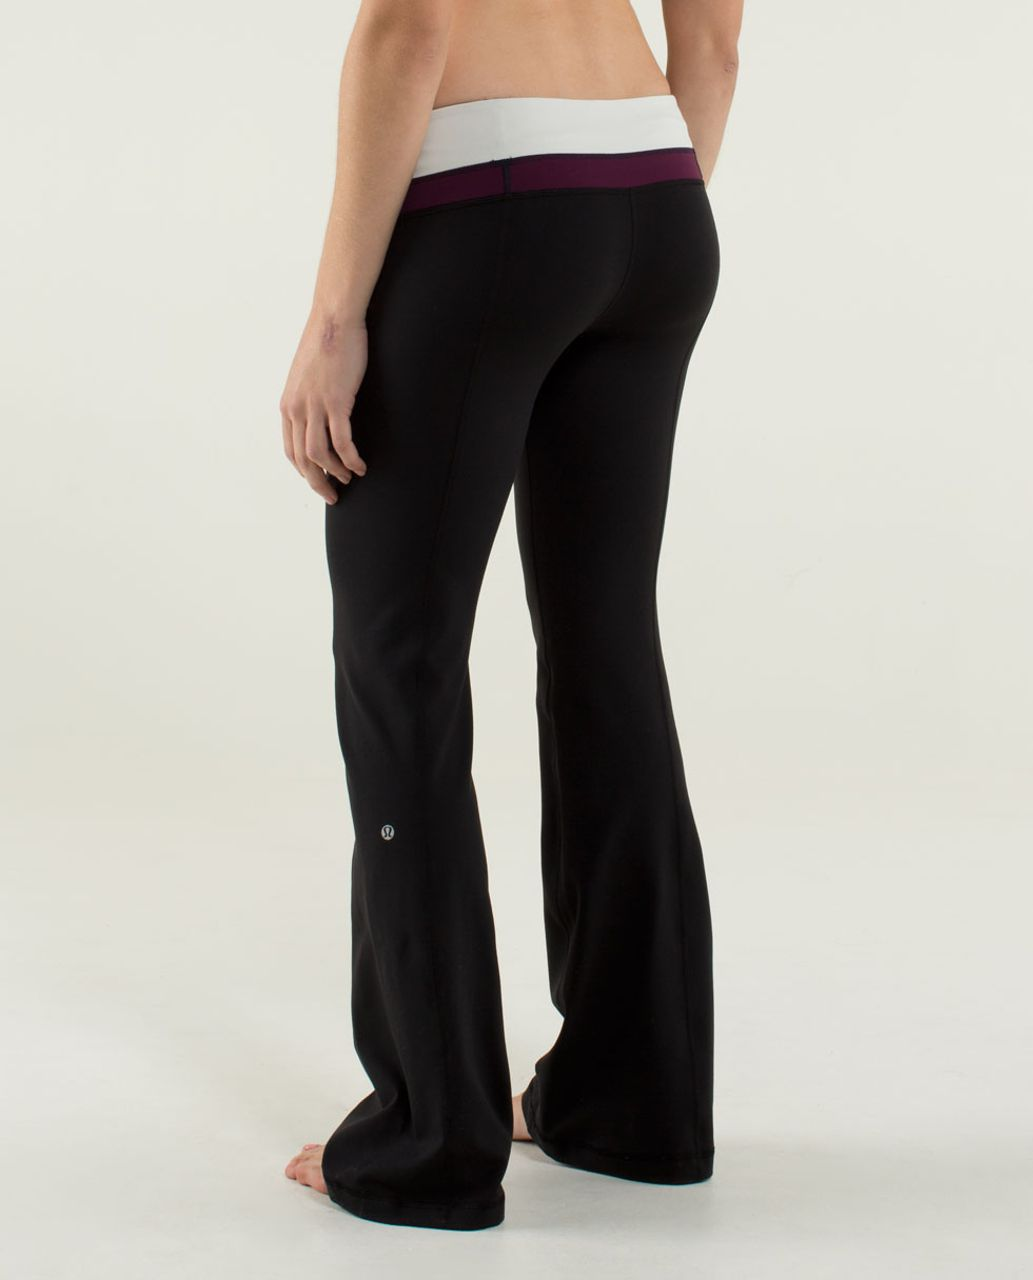 Lululemon Groove Pant (Regular) - Black / Quilt 08 Fall 2013